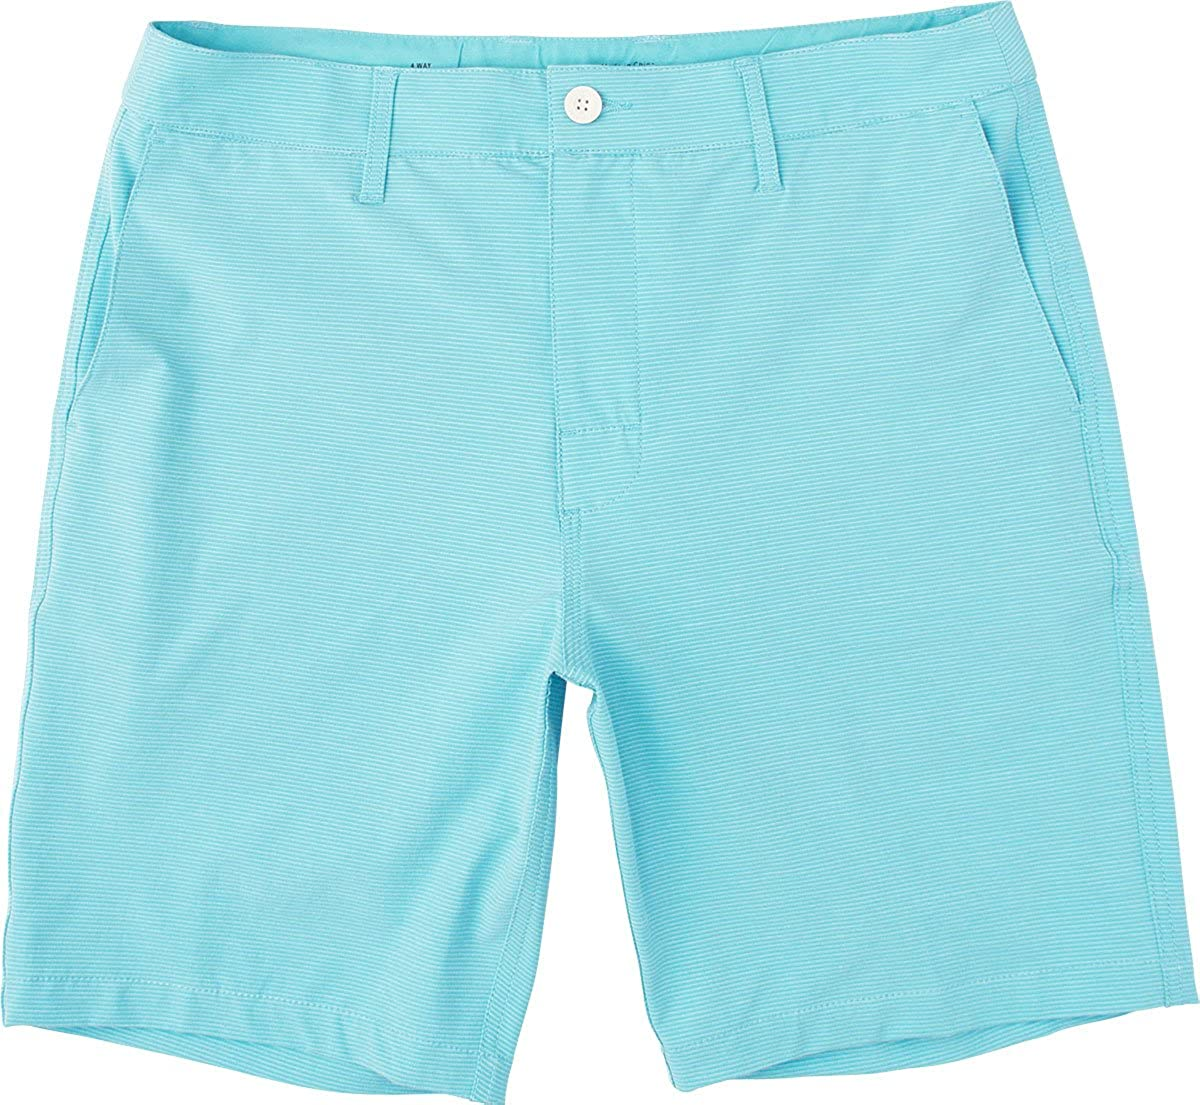 RVCA Mens Feeder Hybrid Short